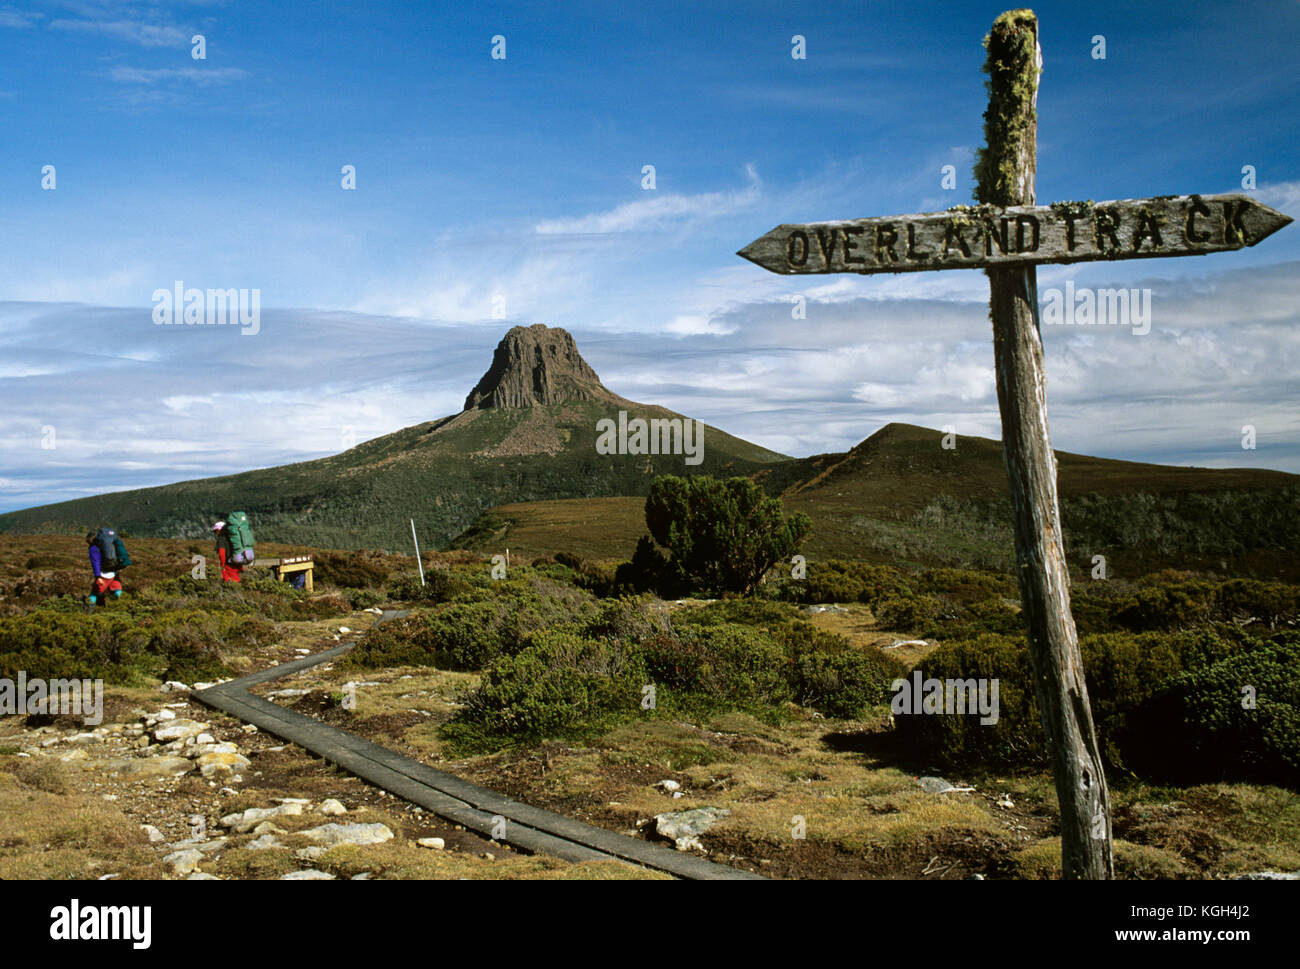 Overland Trails Stock Photos & Overland Trails Stock Images - Alamy